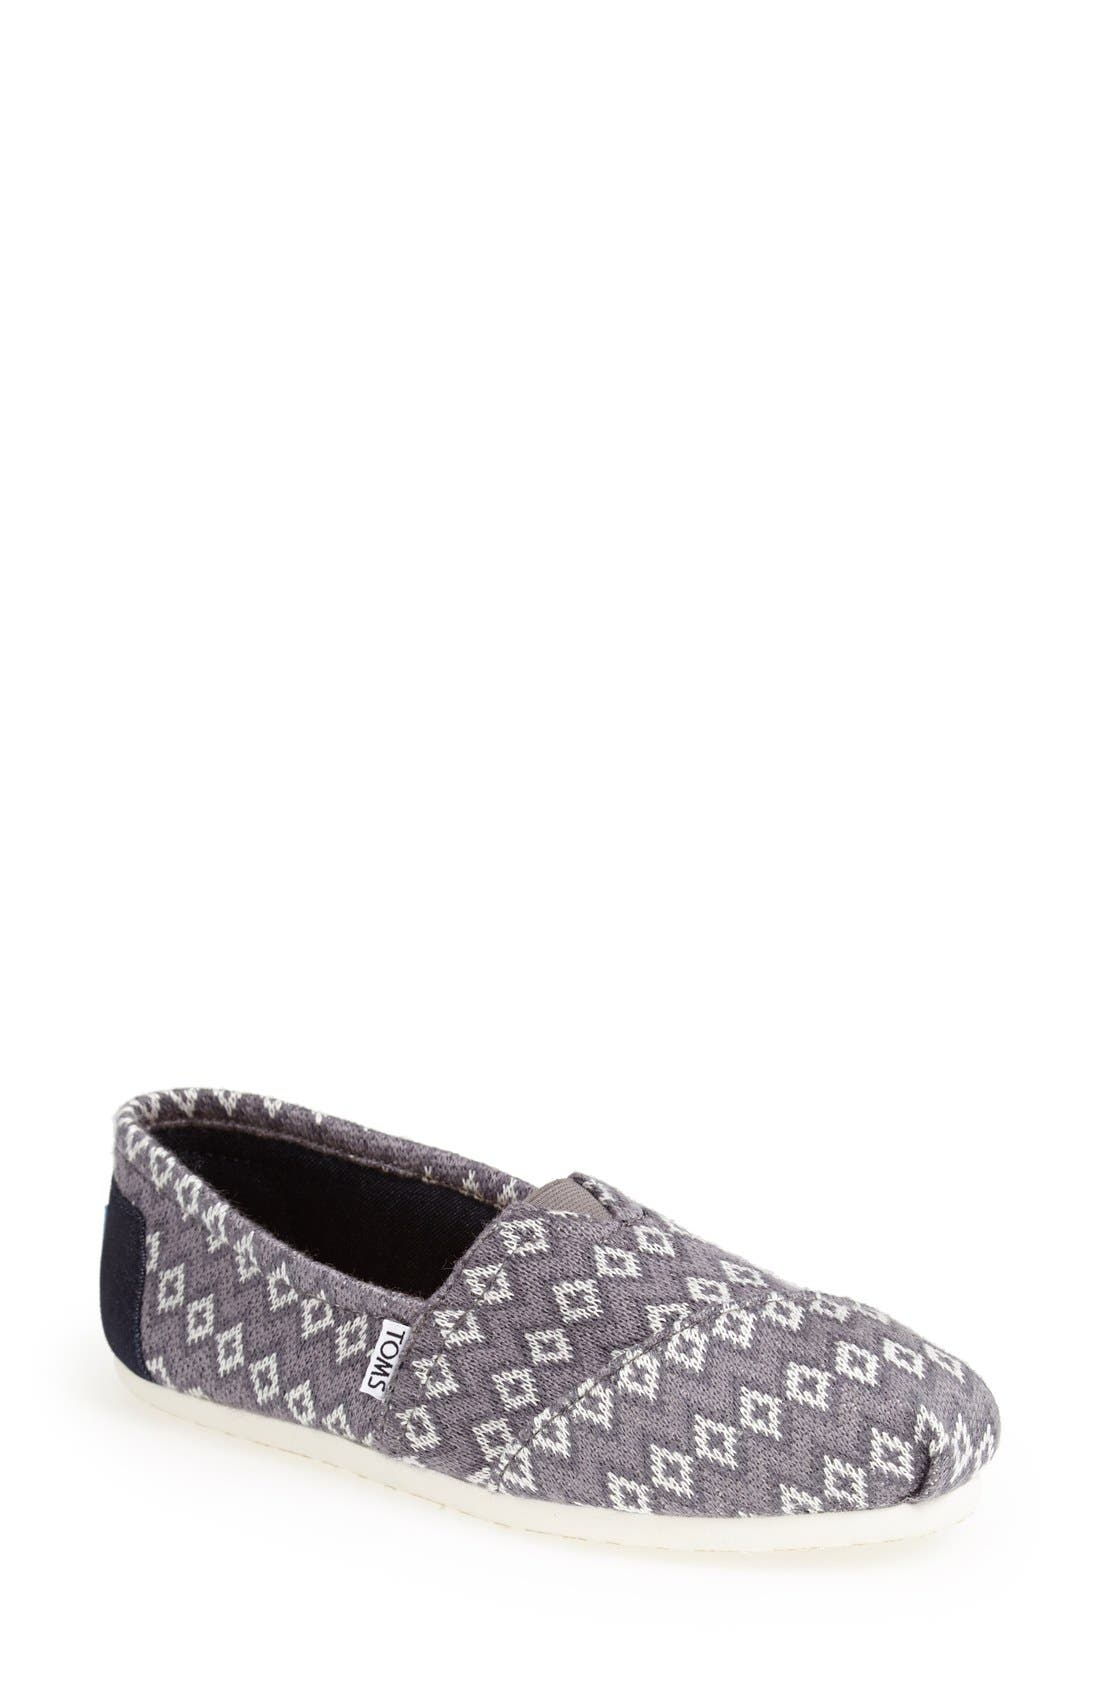 Alternate Image 1 Selected - TOMS 'Classic - Geo Knit' Slip-On (Women)